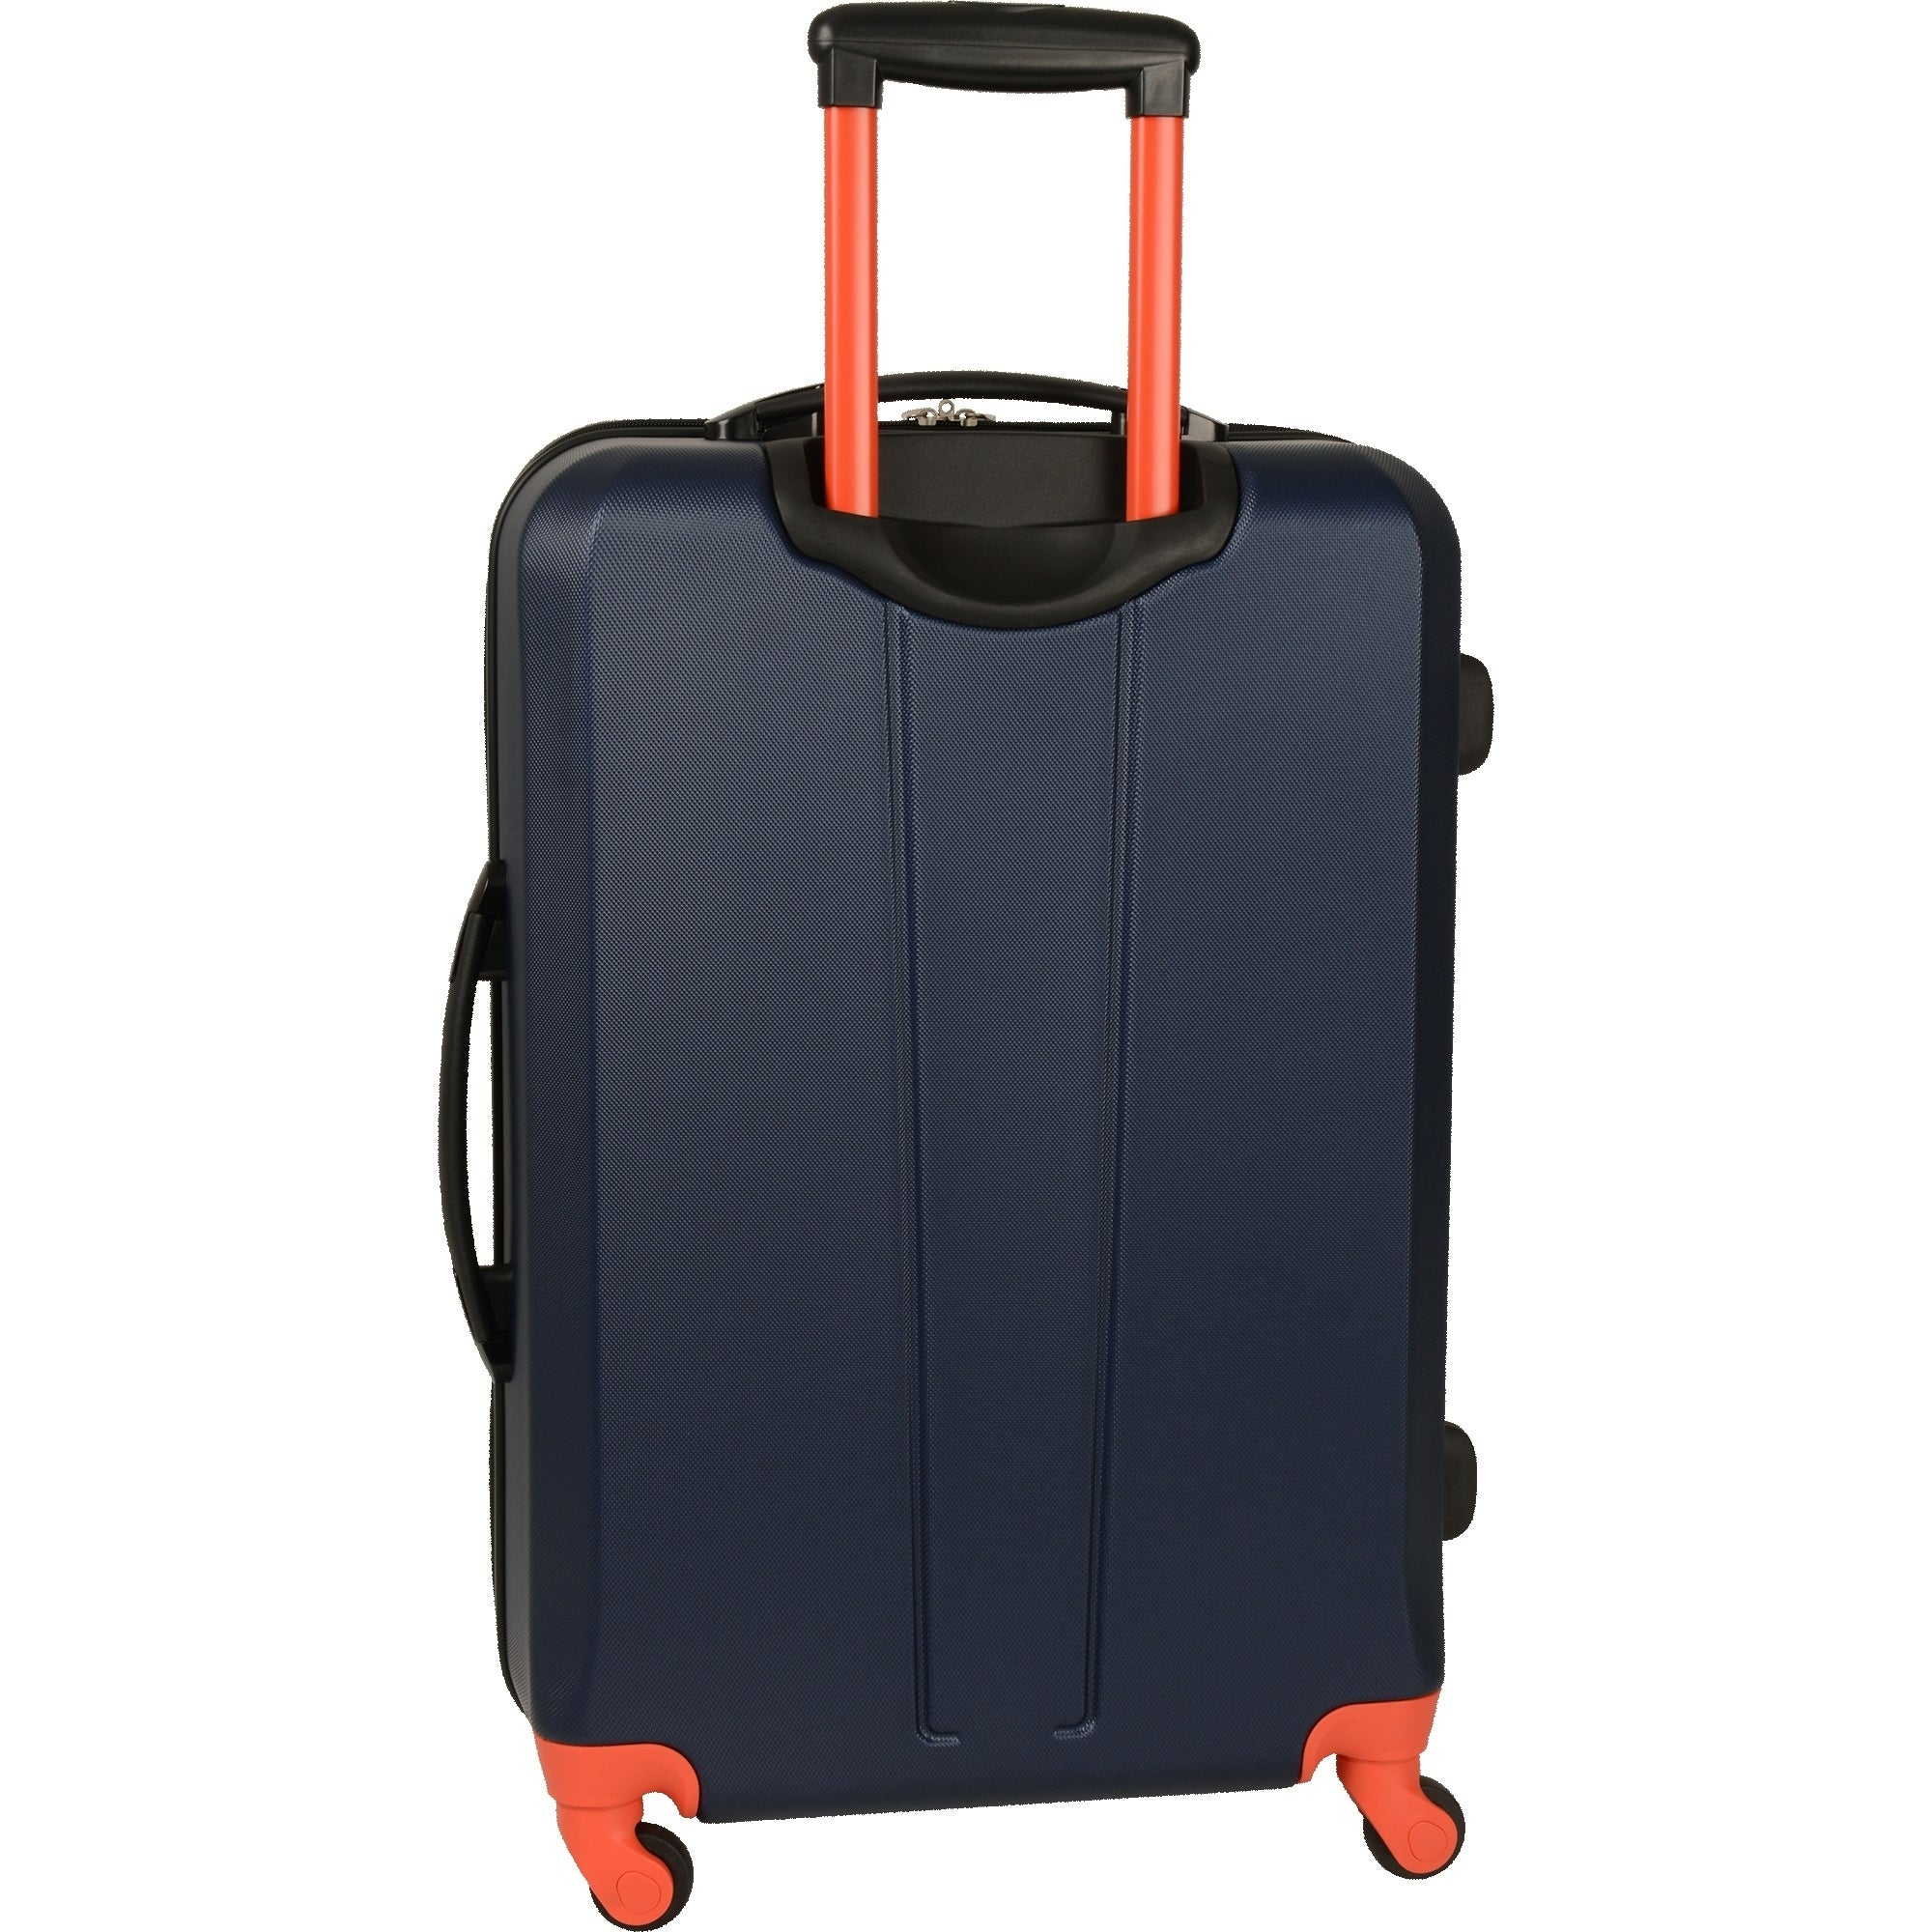 5dfece4d3793 Nautica Tide Beach 21-inch Hardside Spinner Carry-on Suitcase